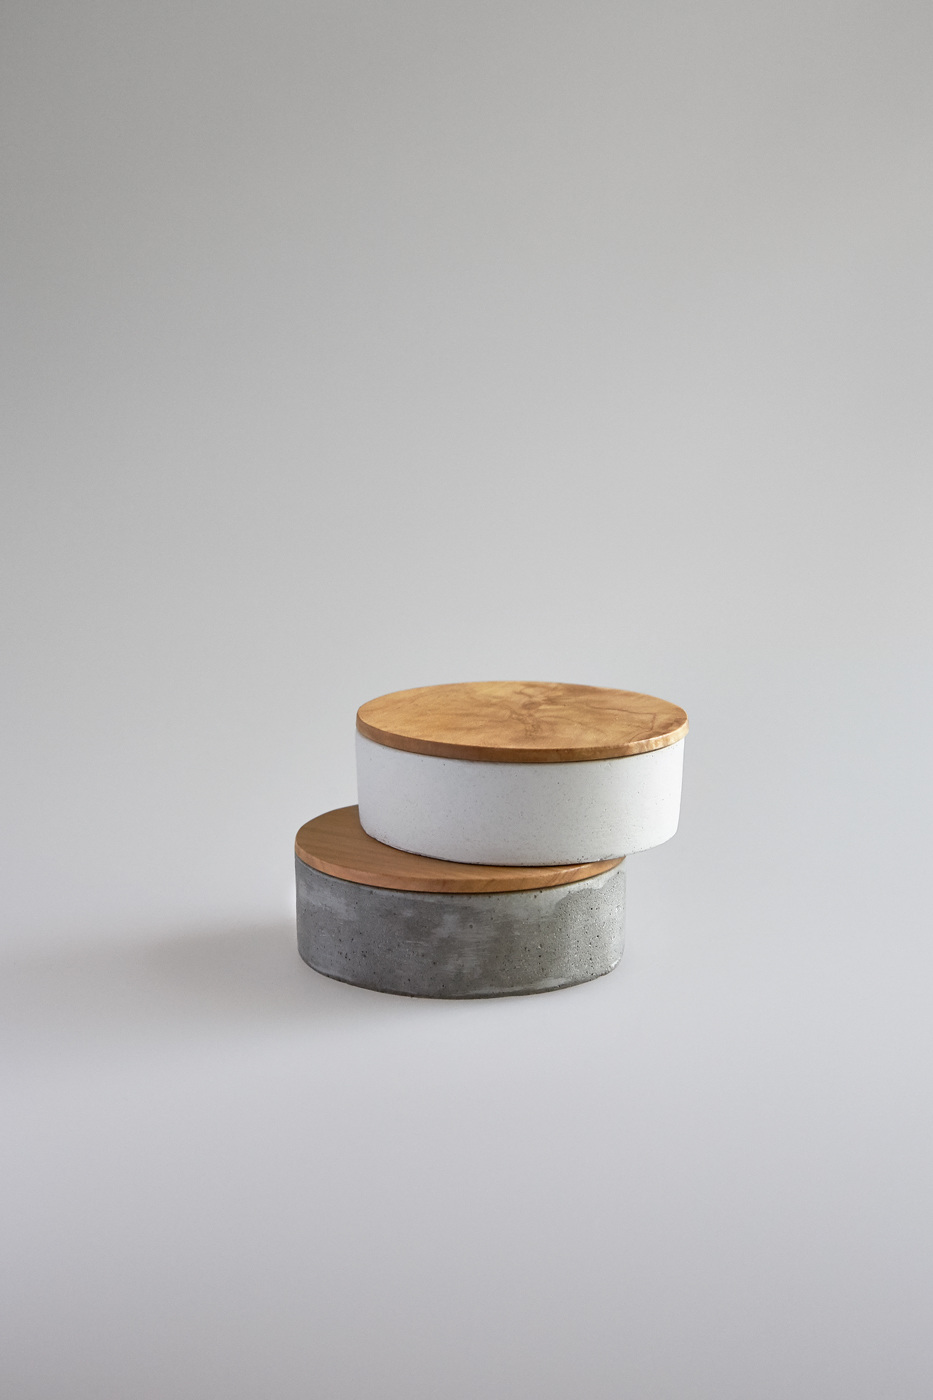 Small Round Concrete Container Studiokyss